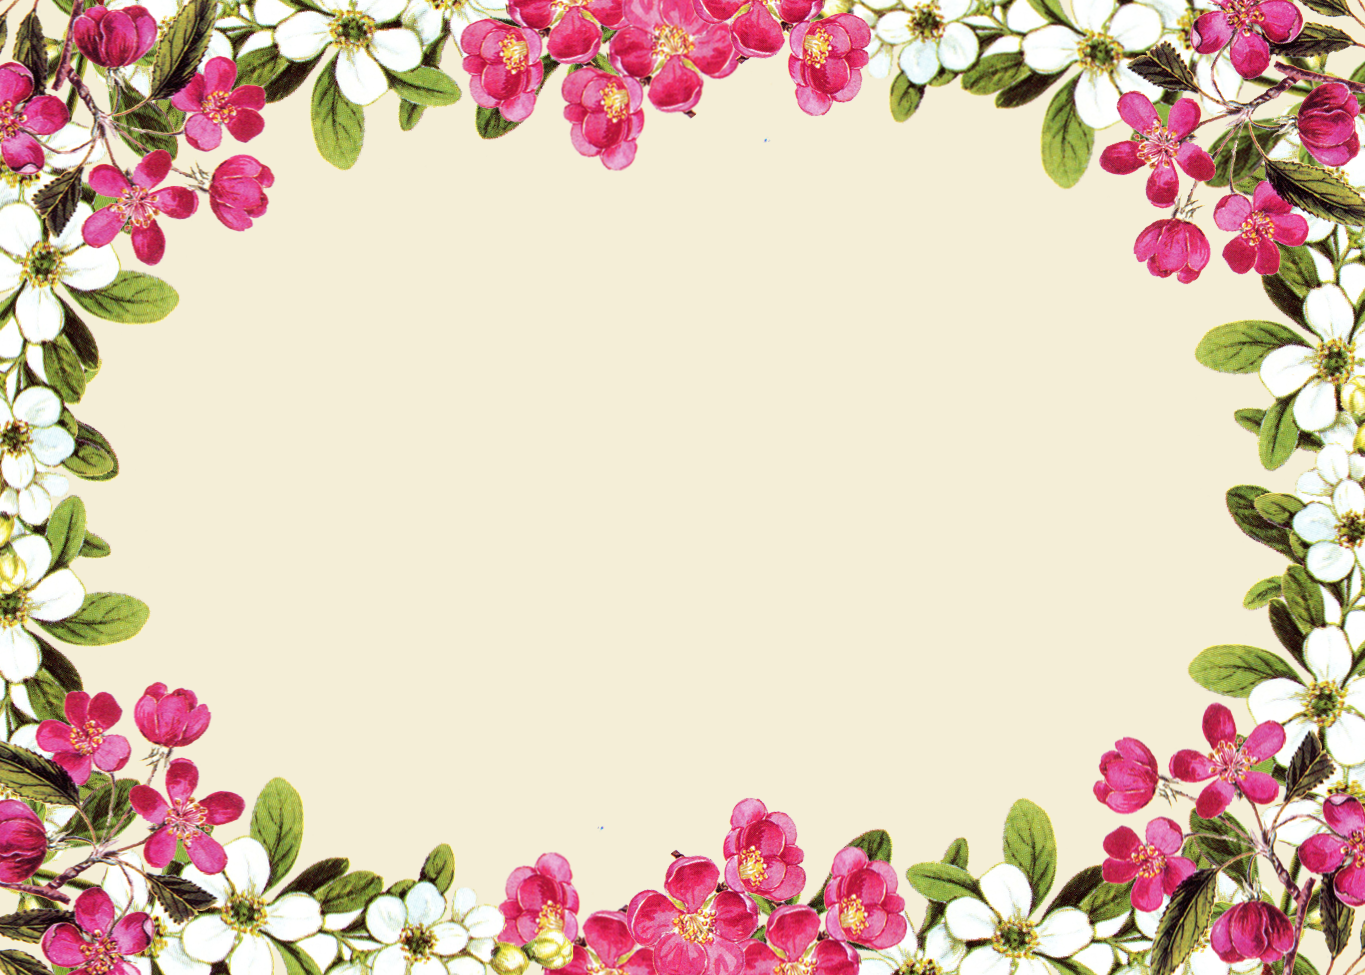 pink floral borders | free digital flower frame png and flower frame ...